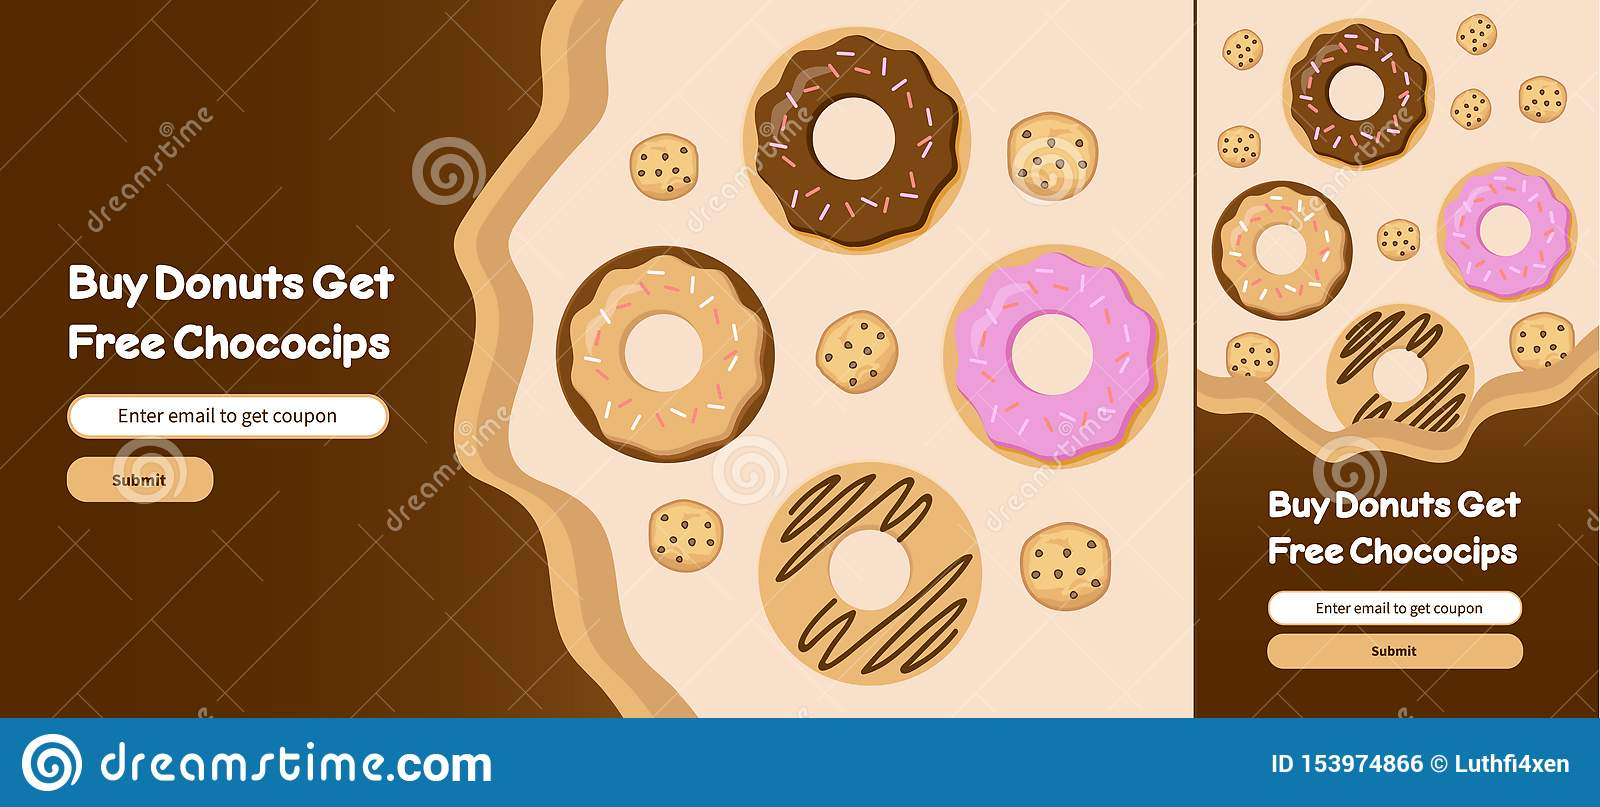 Donuts and Choco chips web banner template design